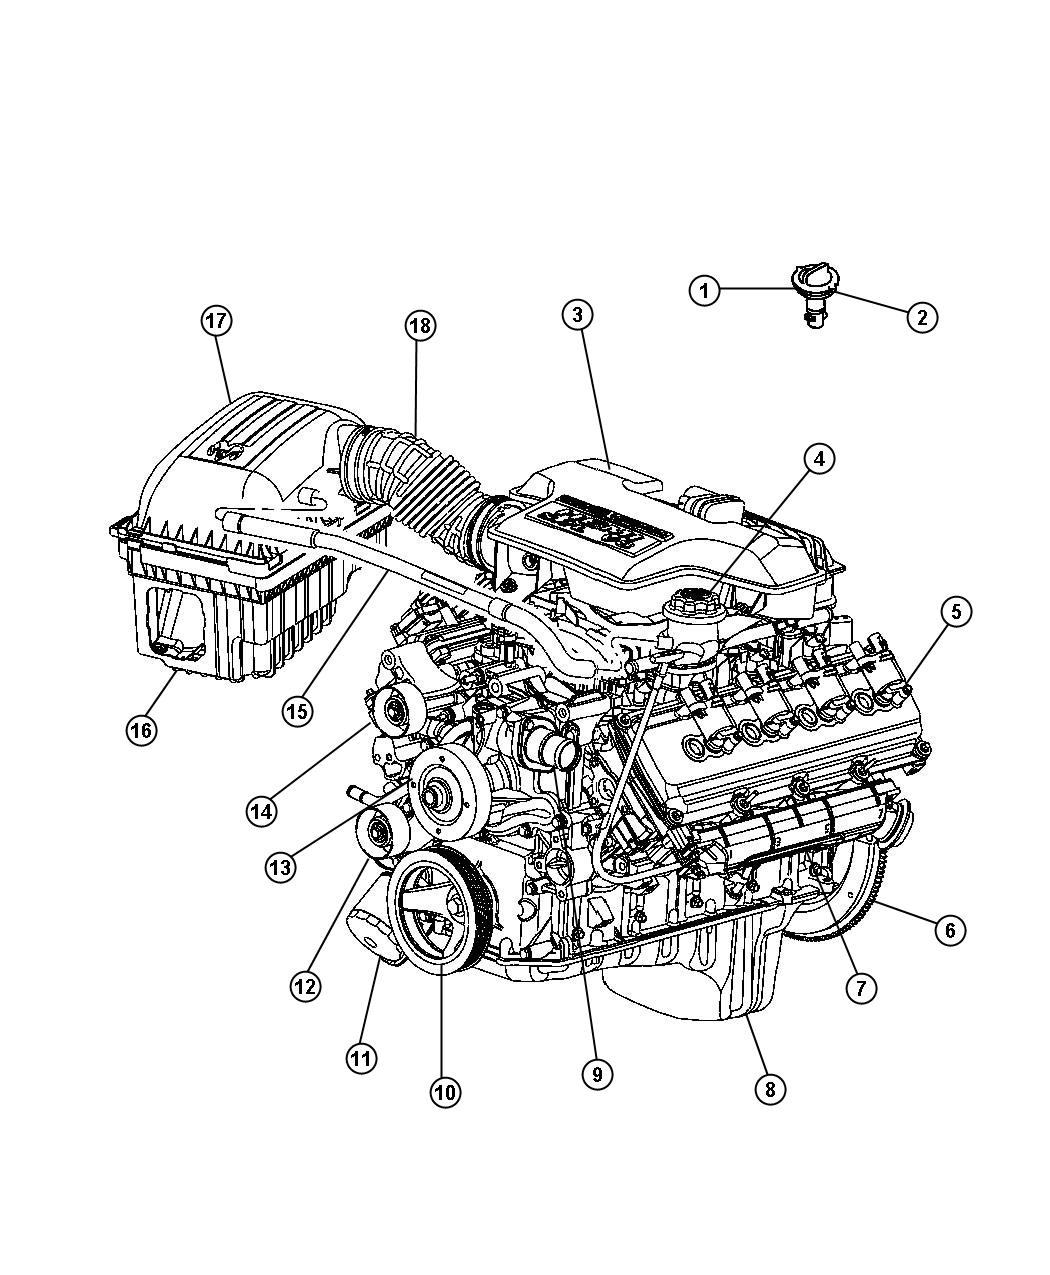 Ram 5 7 Hemi Engine Block Diagram, Ram, Free Engine Image